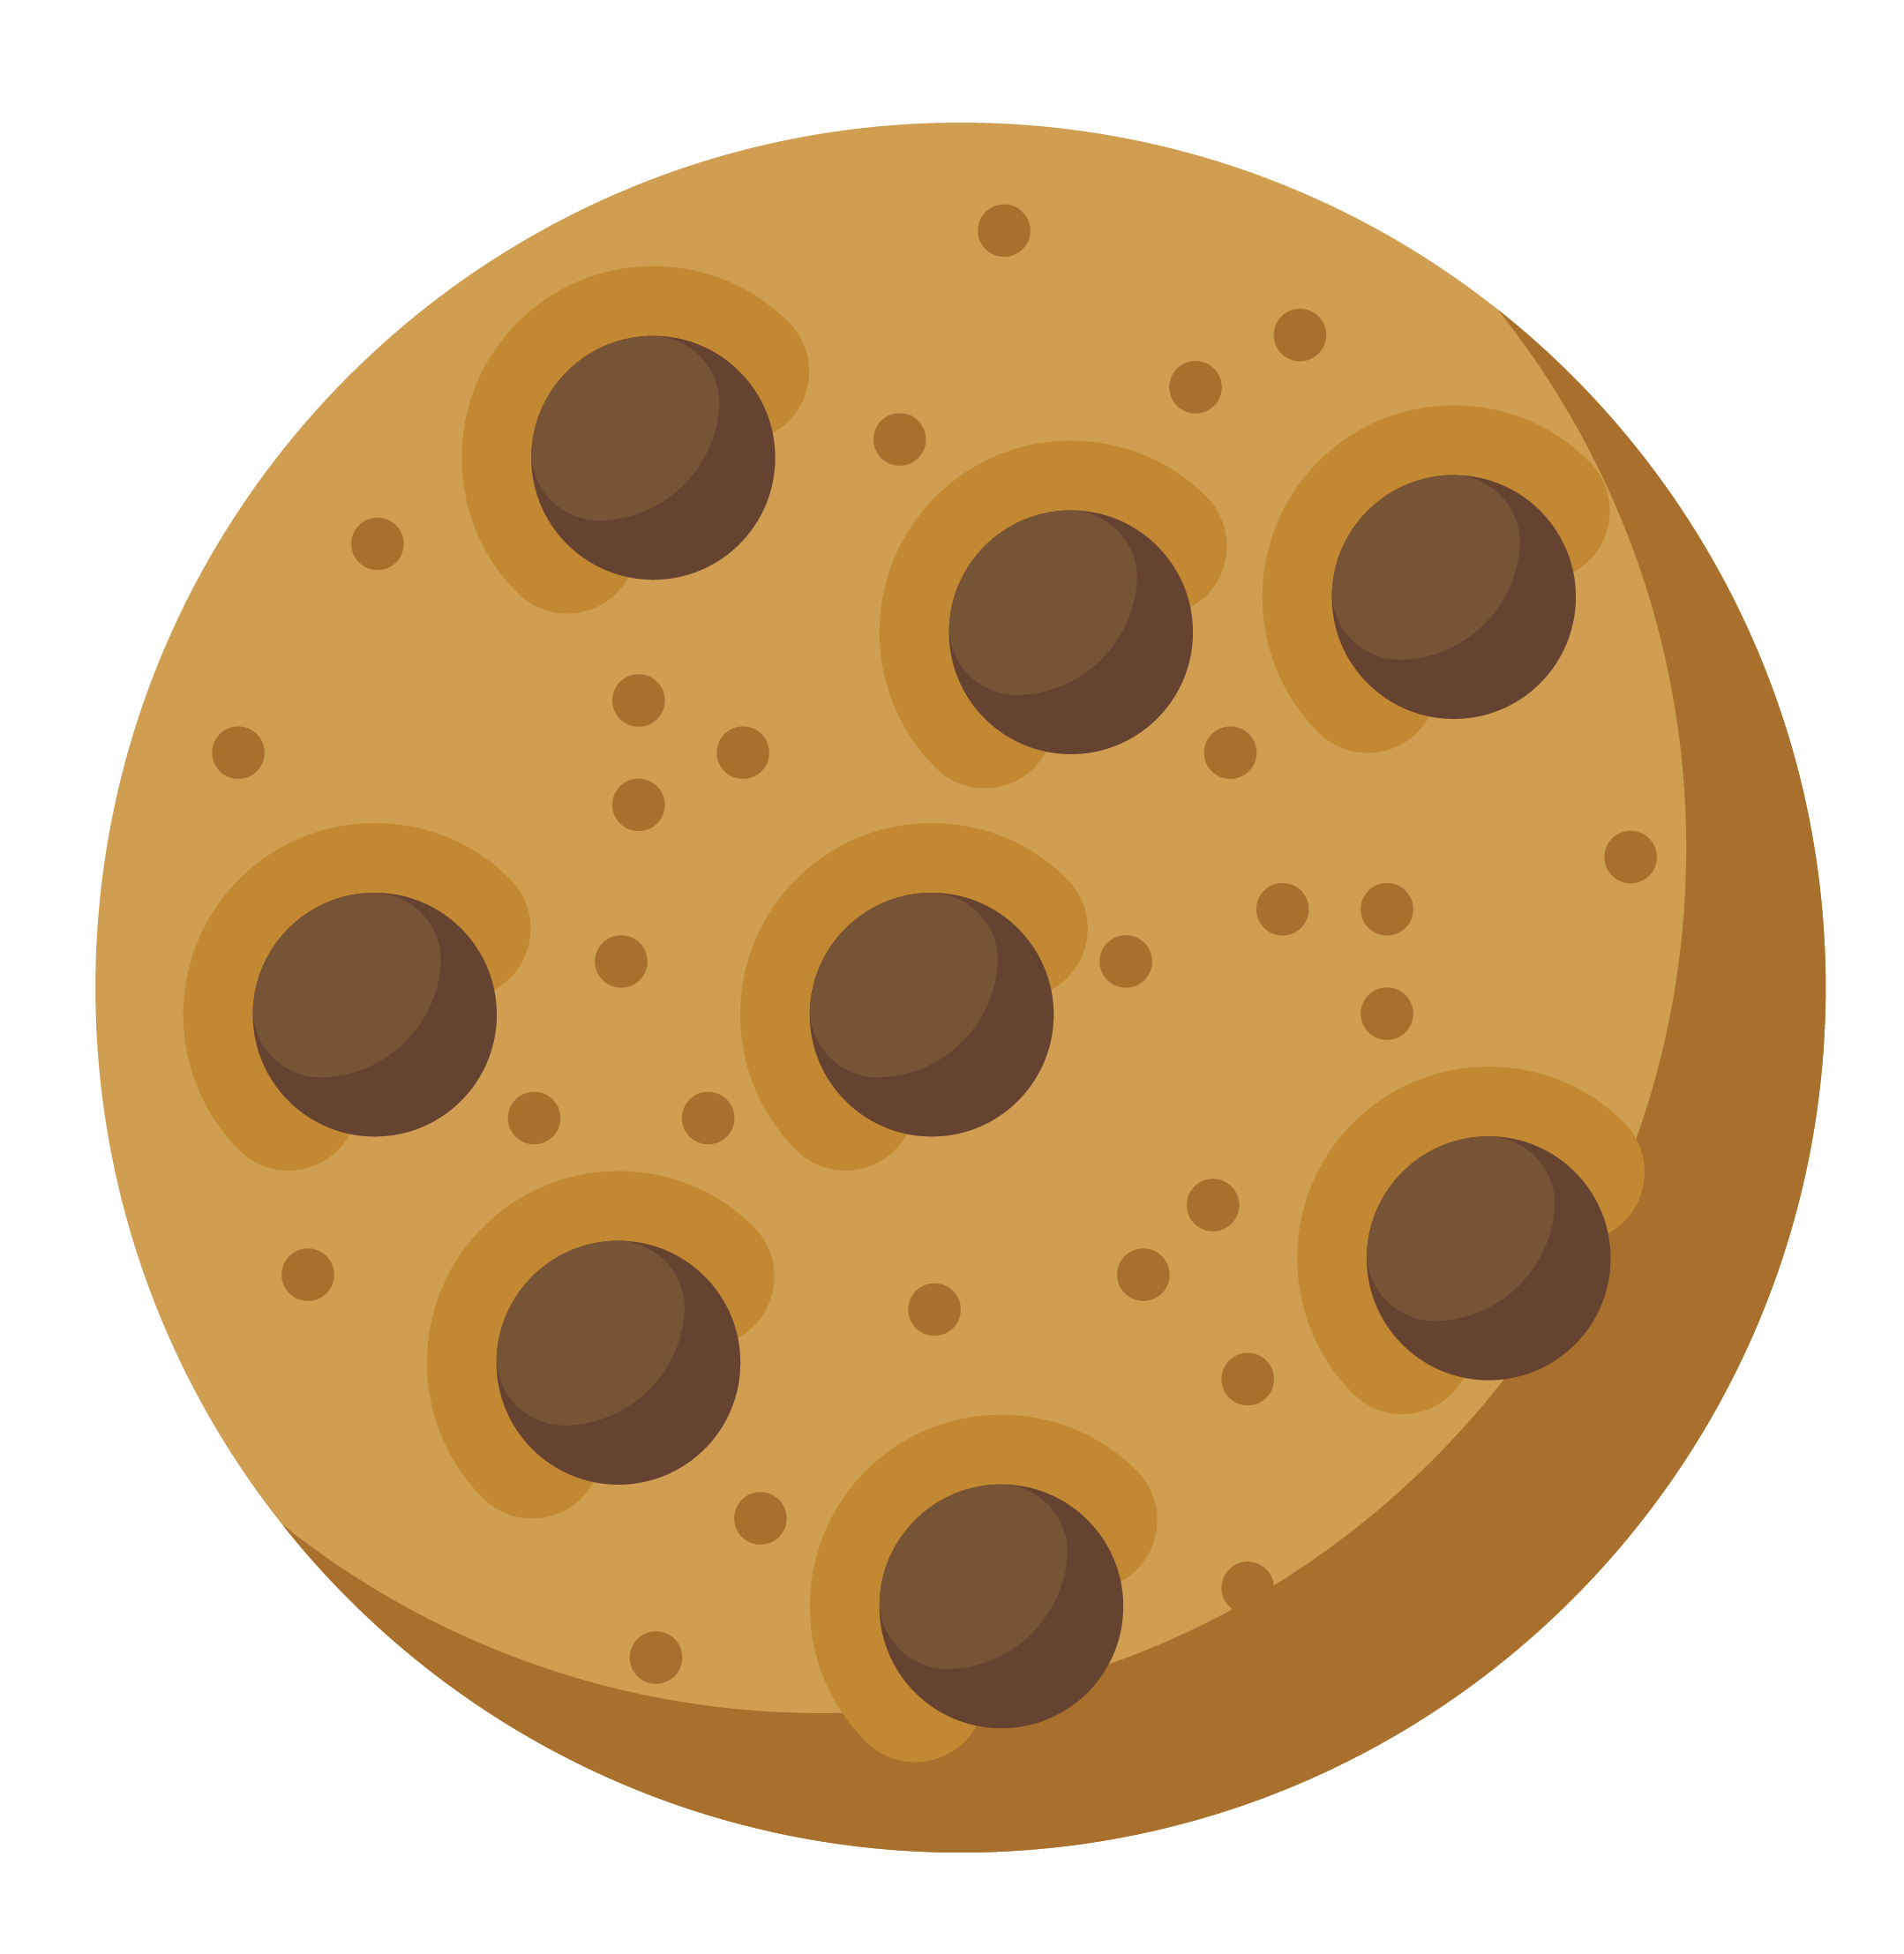 Picture of a cookie